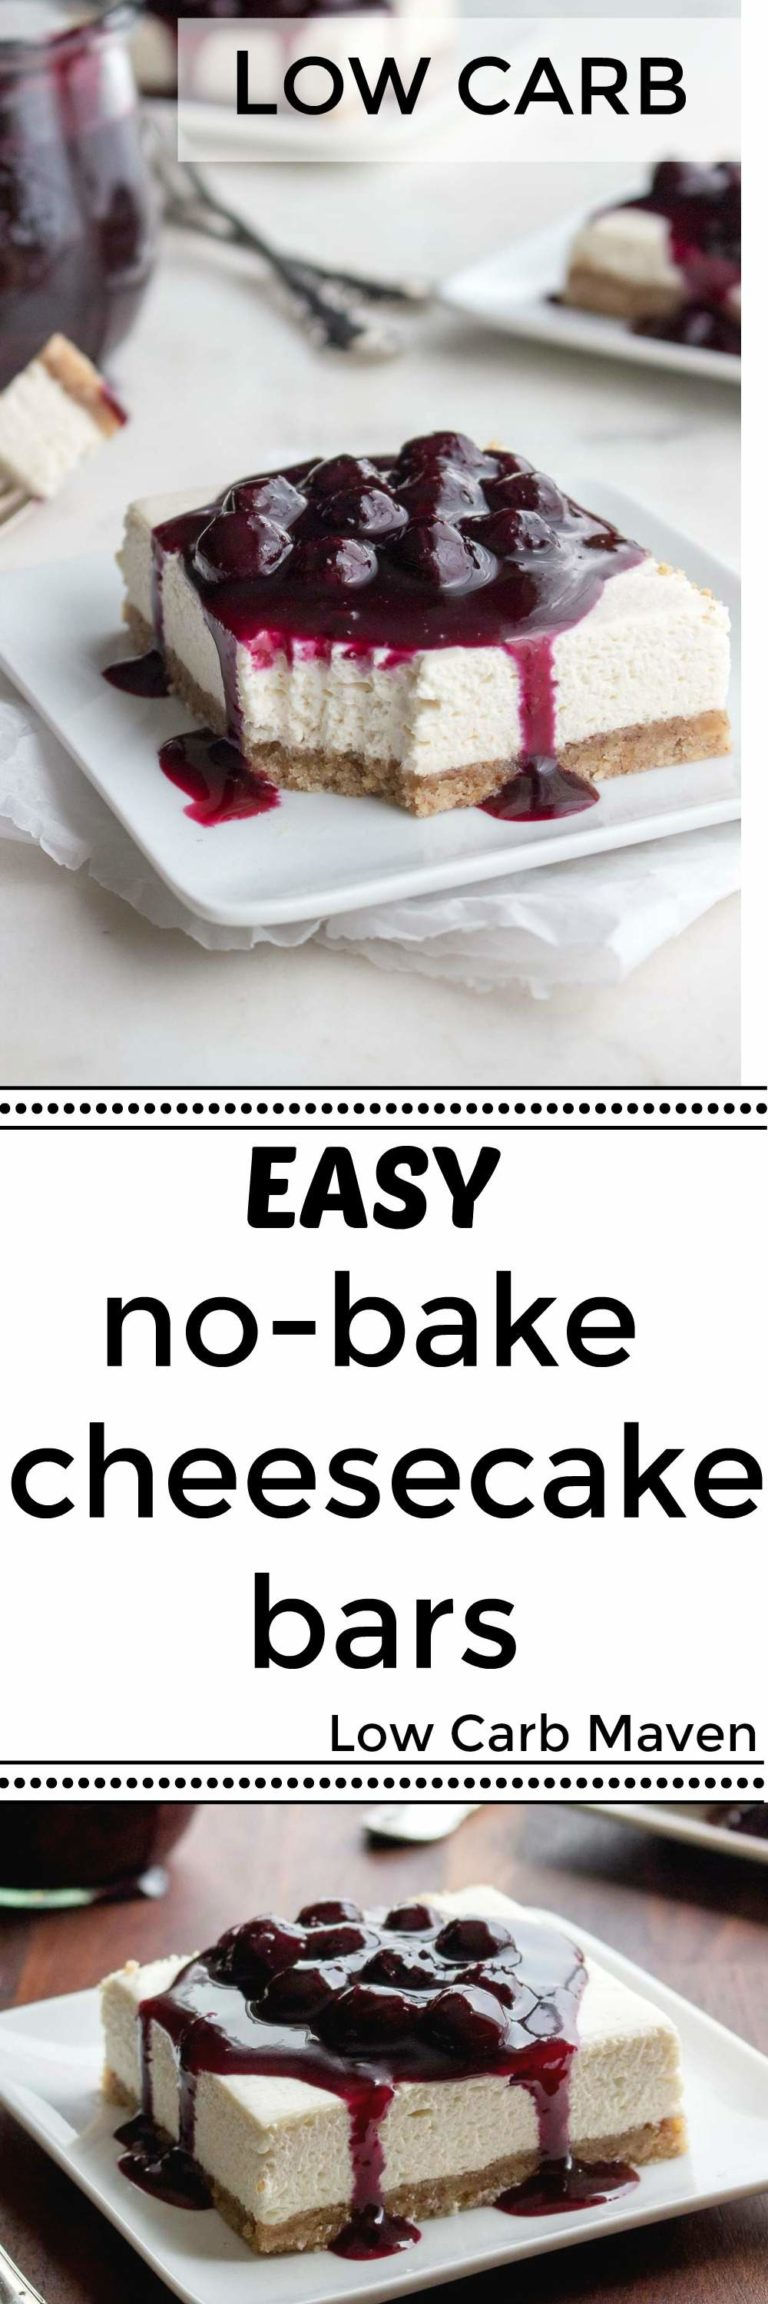 These Easy Low Carb No Bake Cheesecake Bars Are Sugar Free